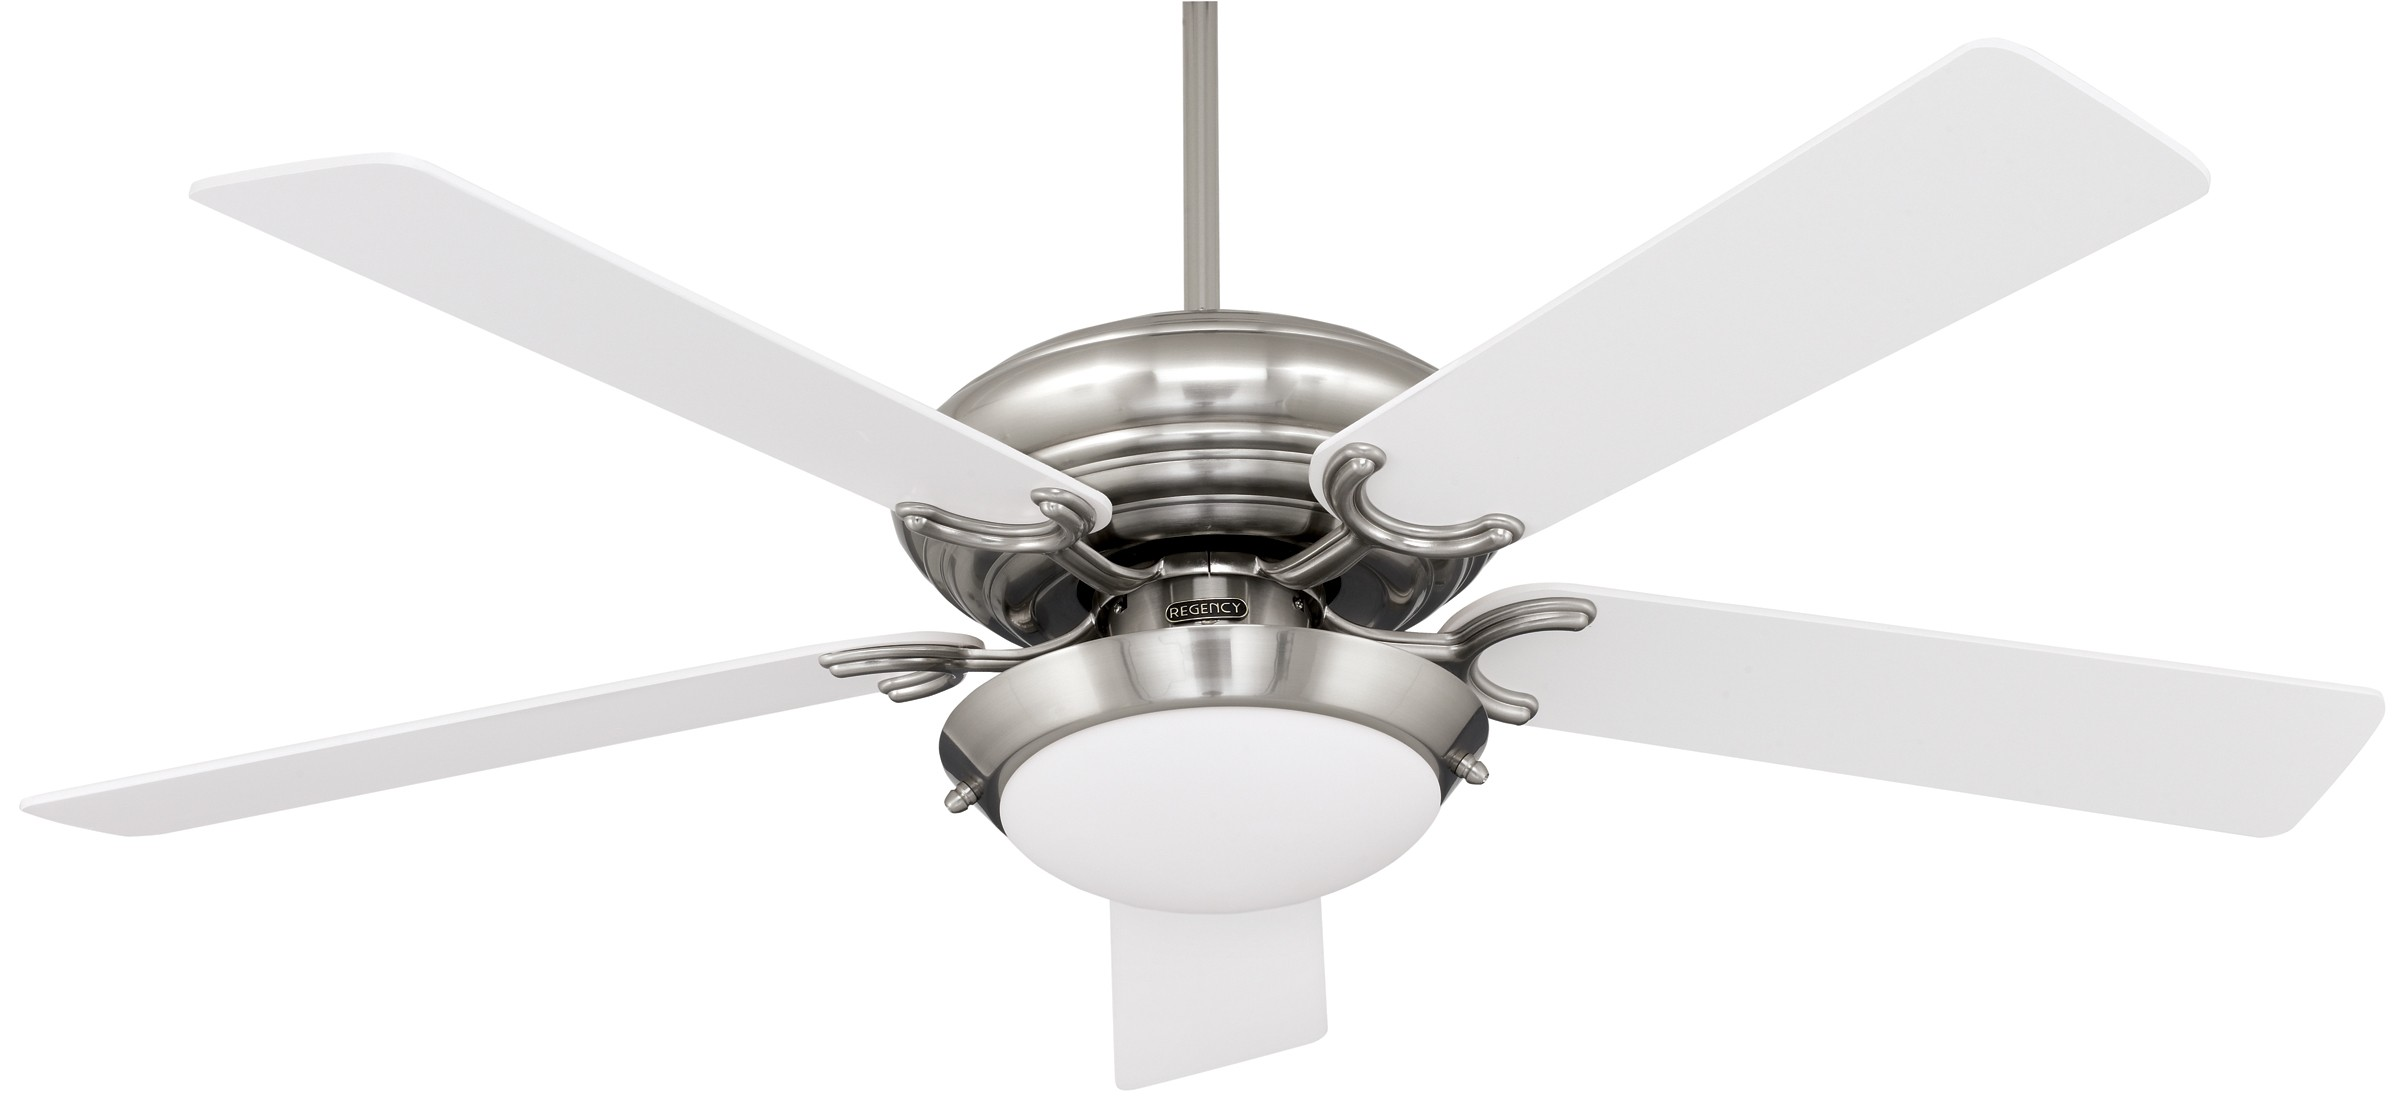 Ceiling fan light kit white 10 reasons to